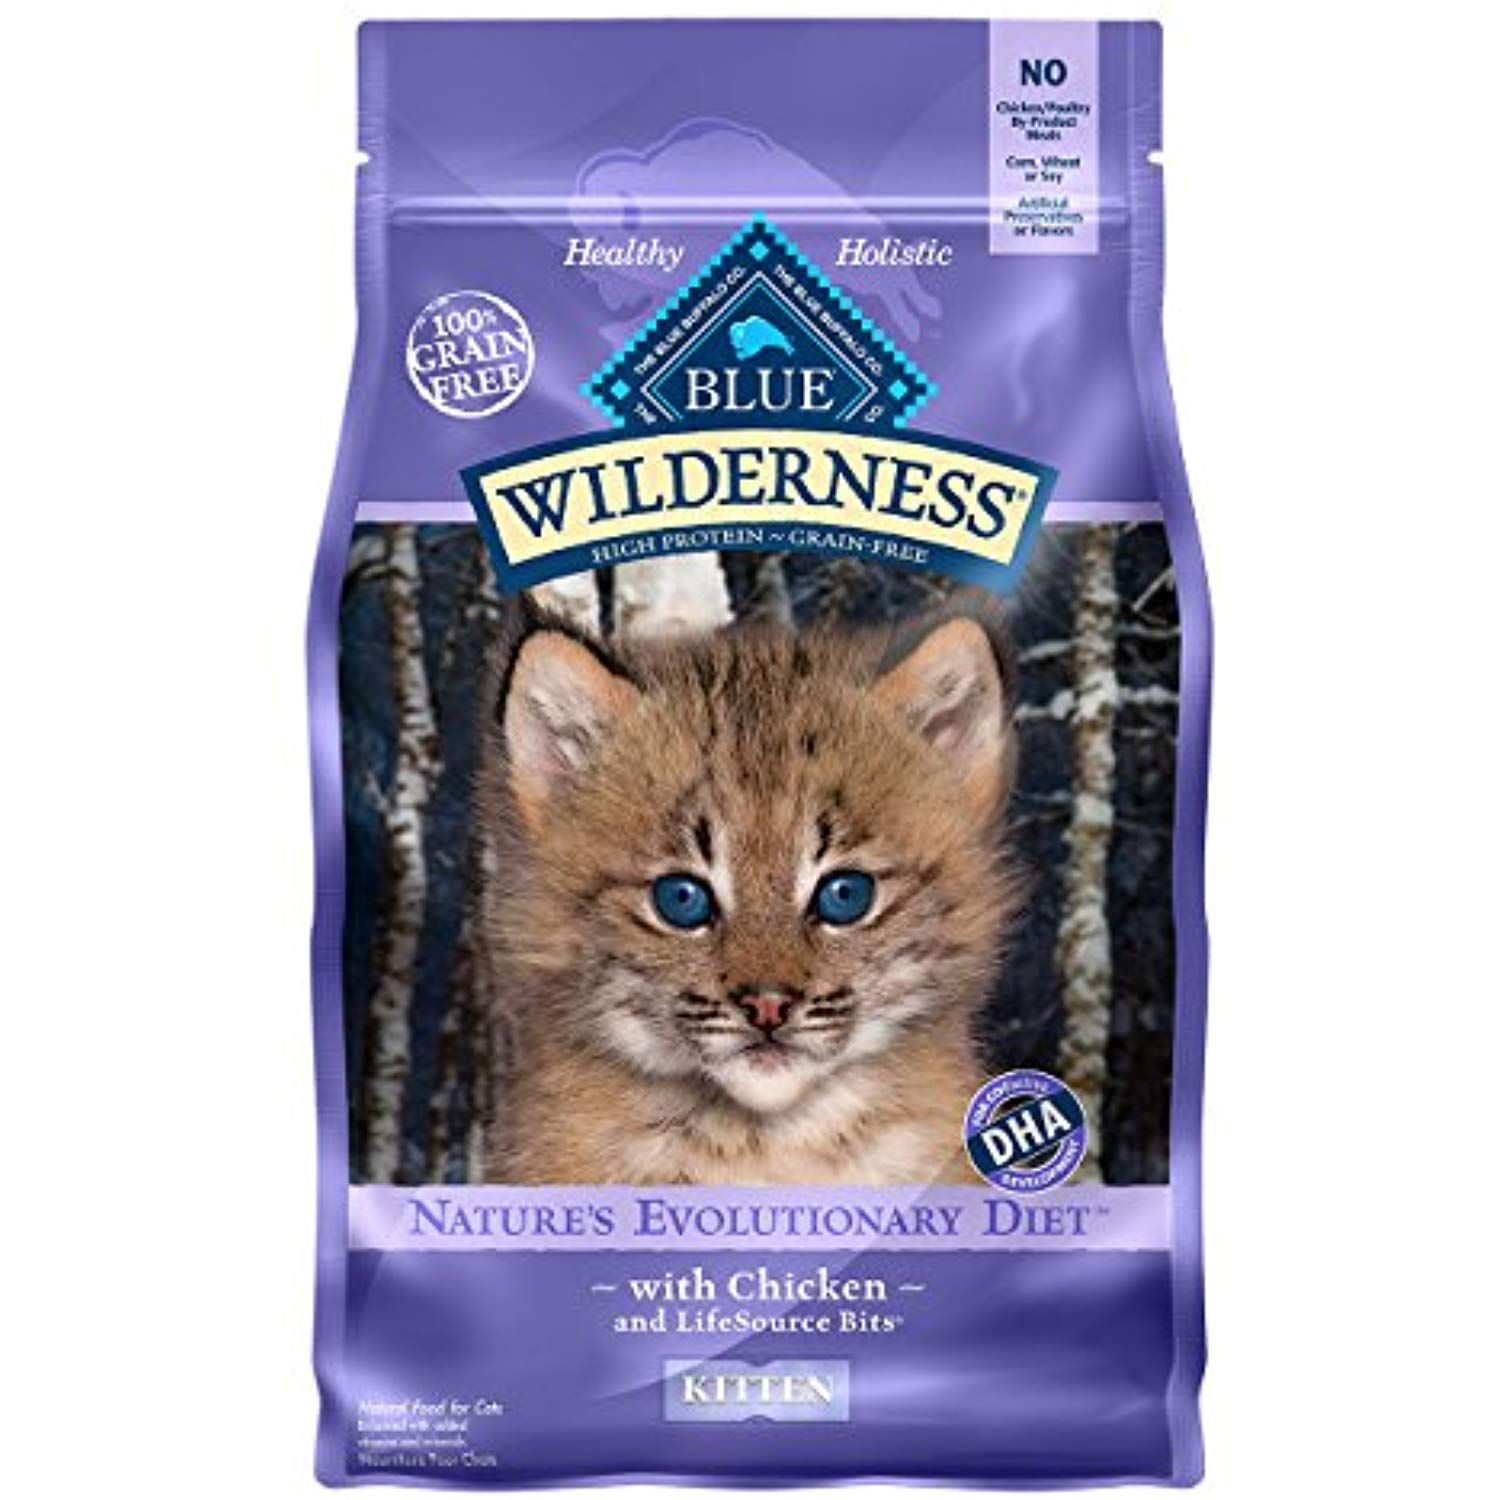 Blue Buffalo Wilderness High Protein Grain Free Natural Kitten Dry Cat Food Chicken 5 Lb Click Image For More Kitten Food Dry Cat Food Chicken Recipes Dry